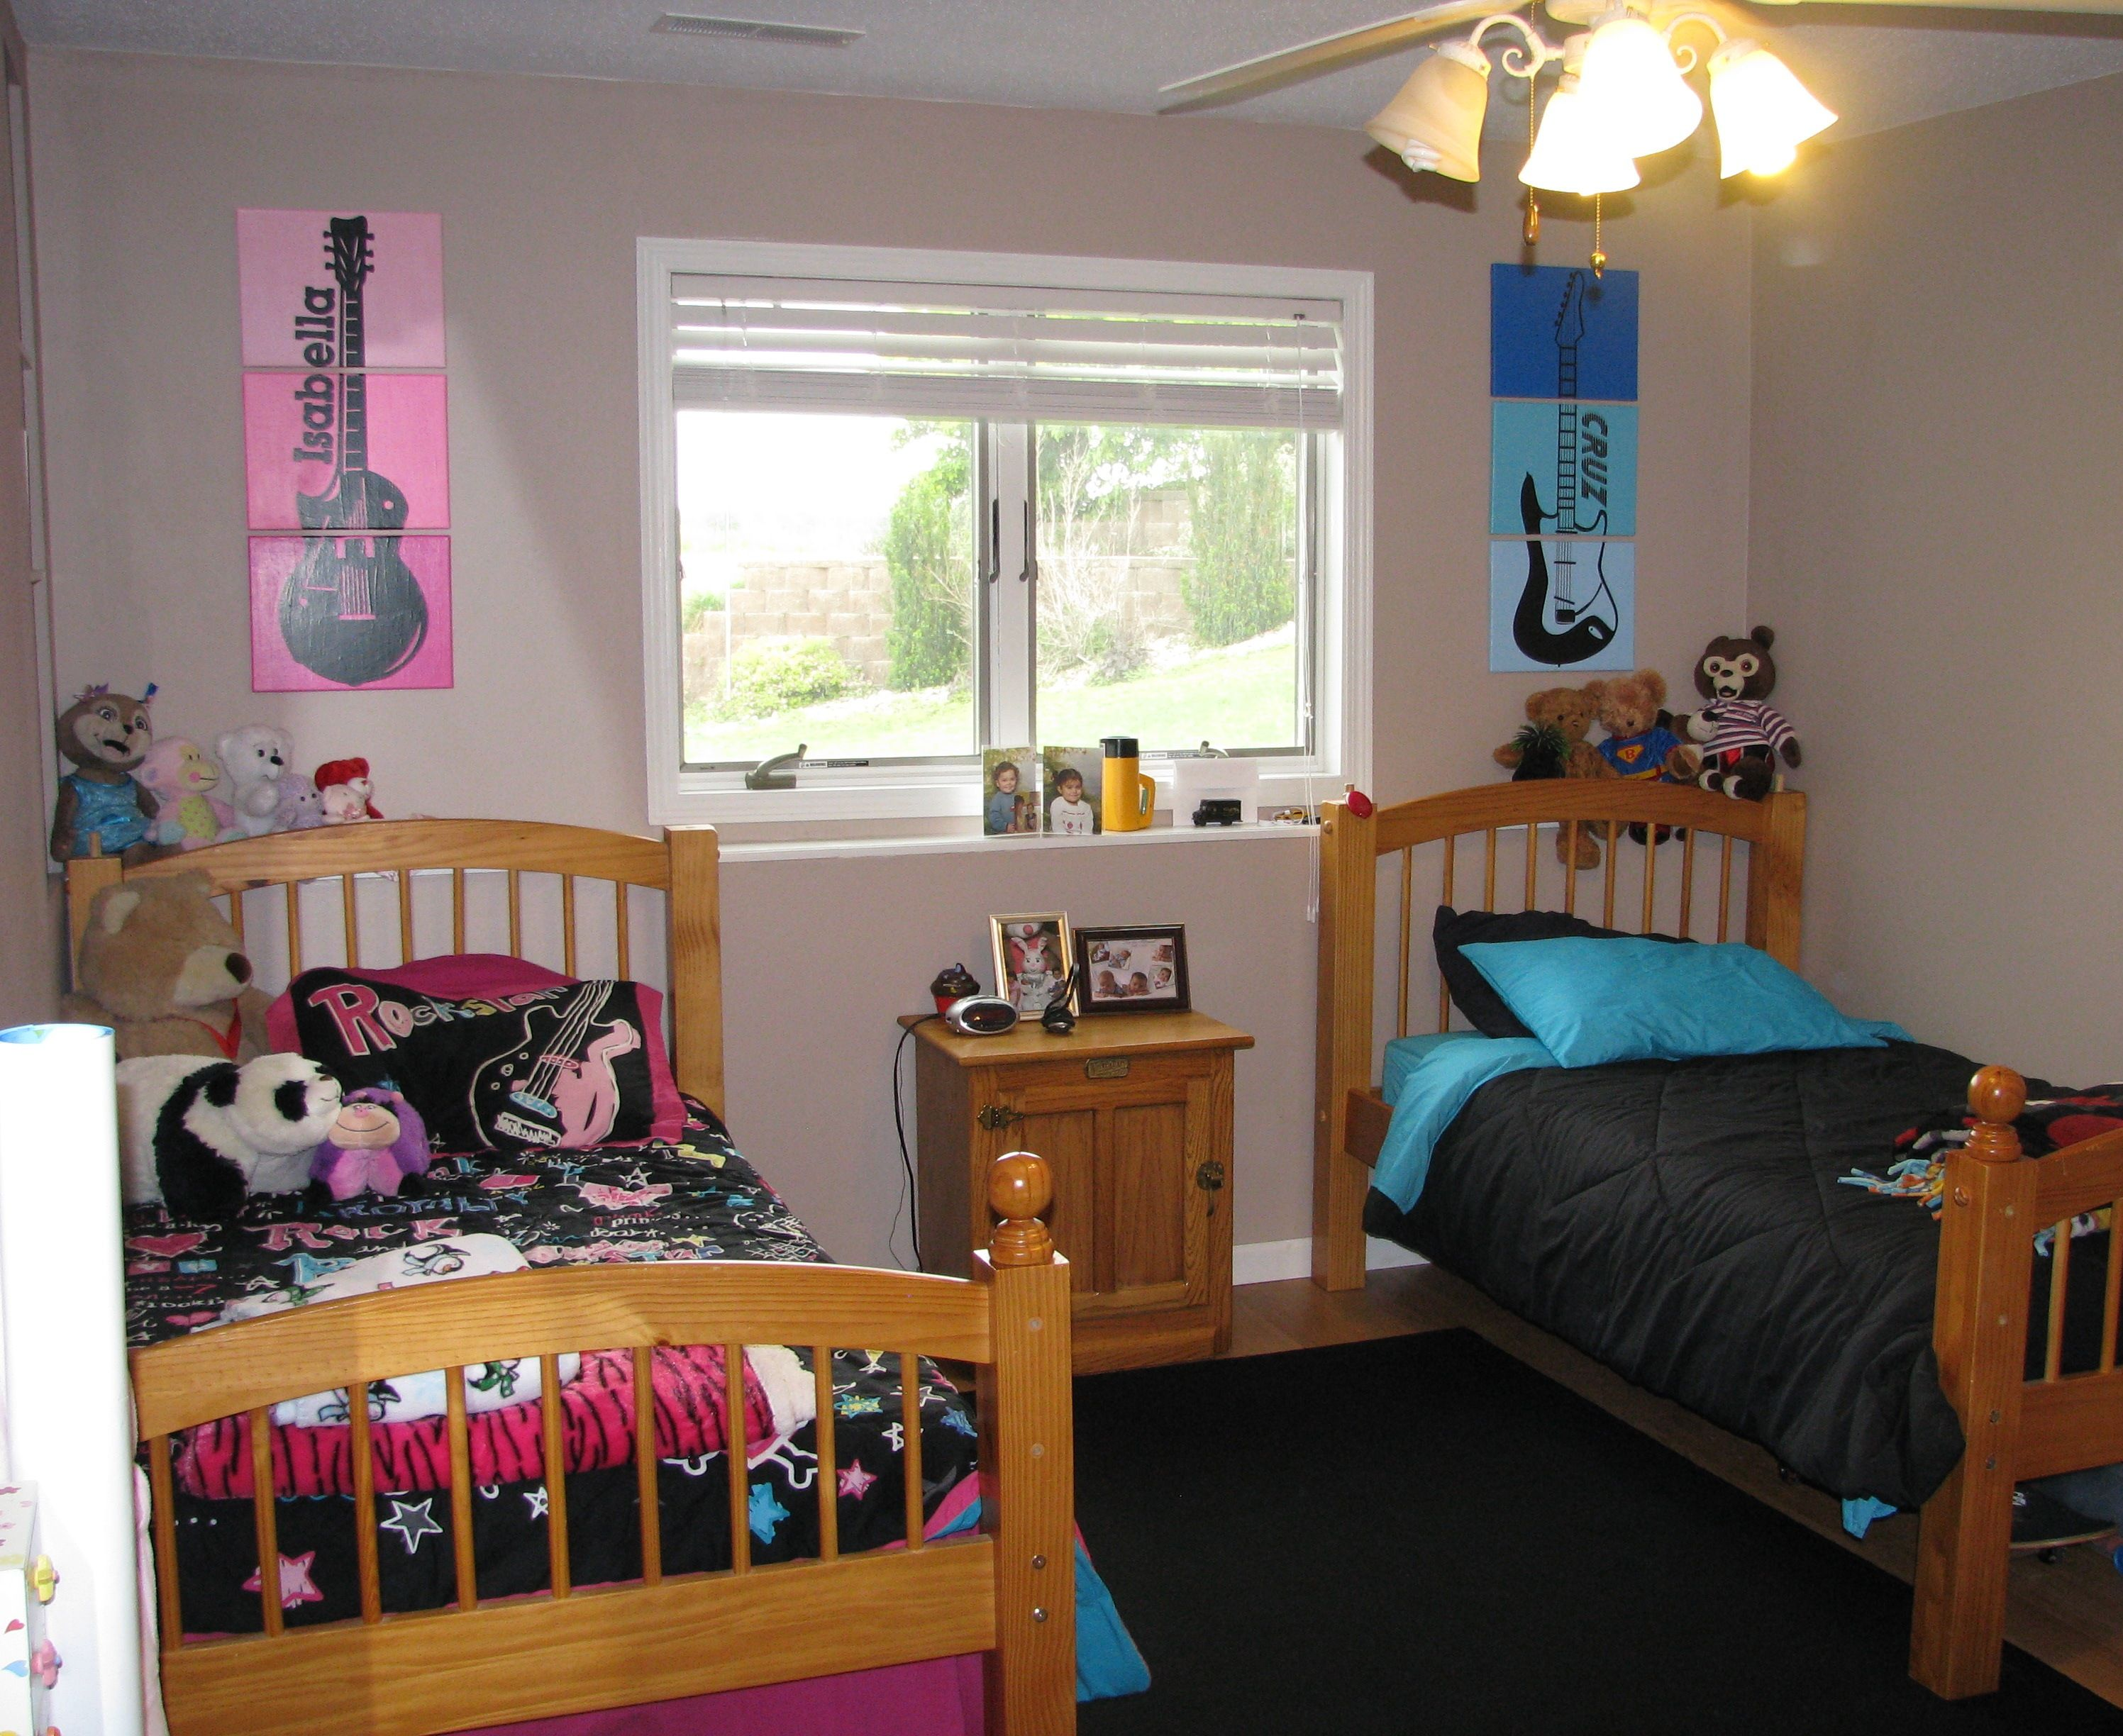 Girl And Boy Room Ideas Rock 39n Roll Guitar Bedroom For My 7 Year Old Twins Boy